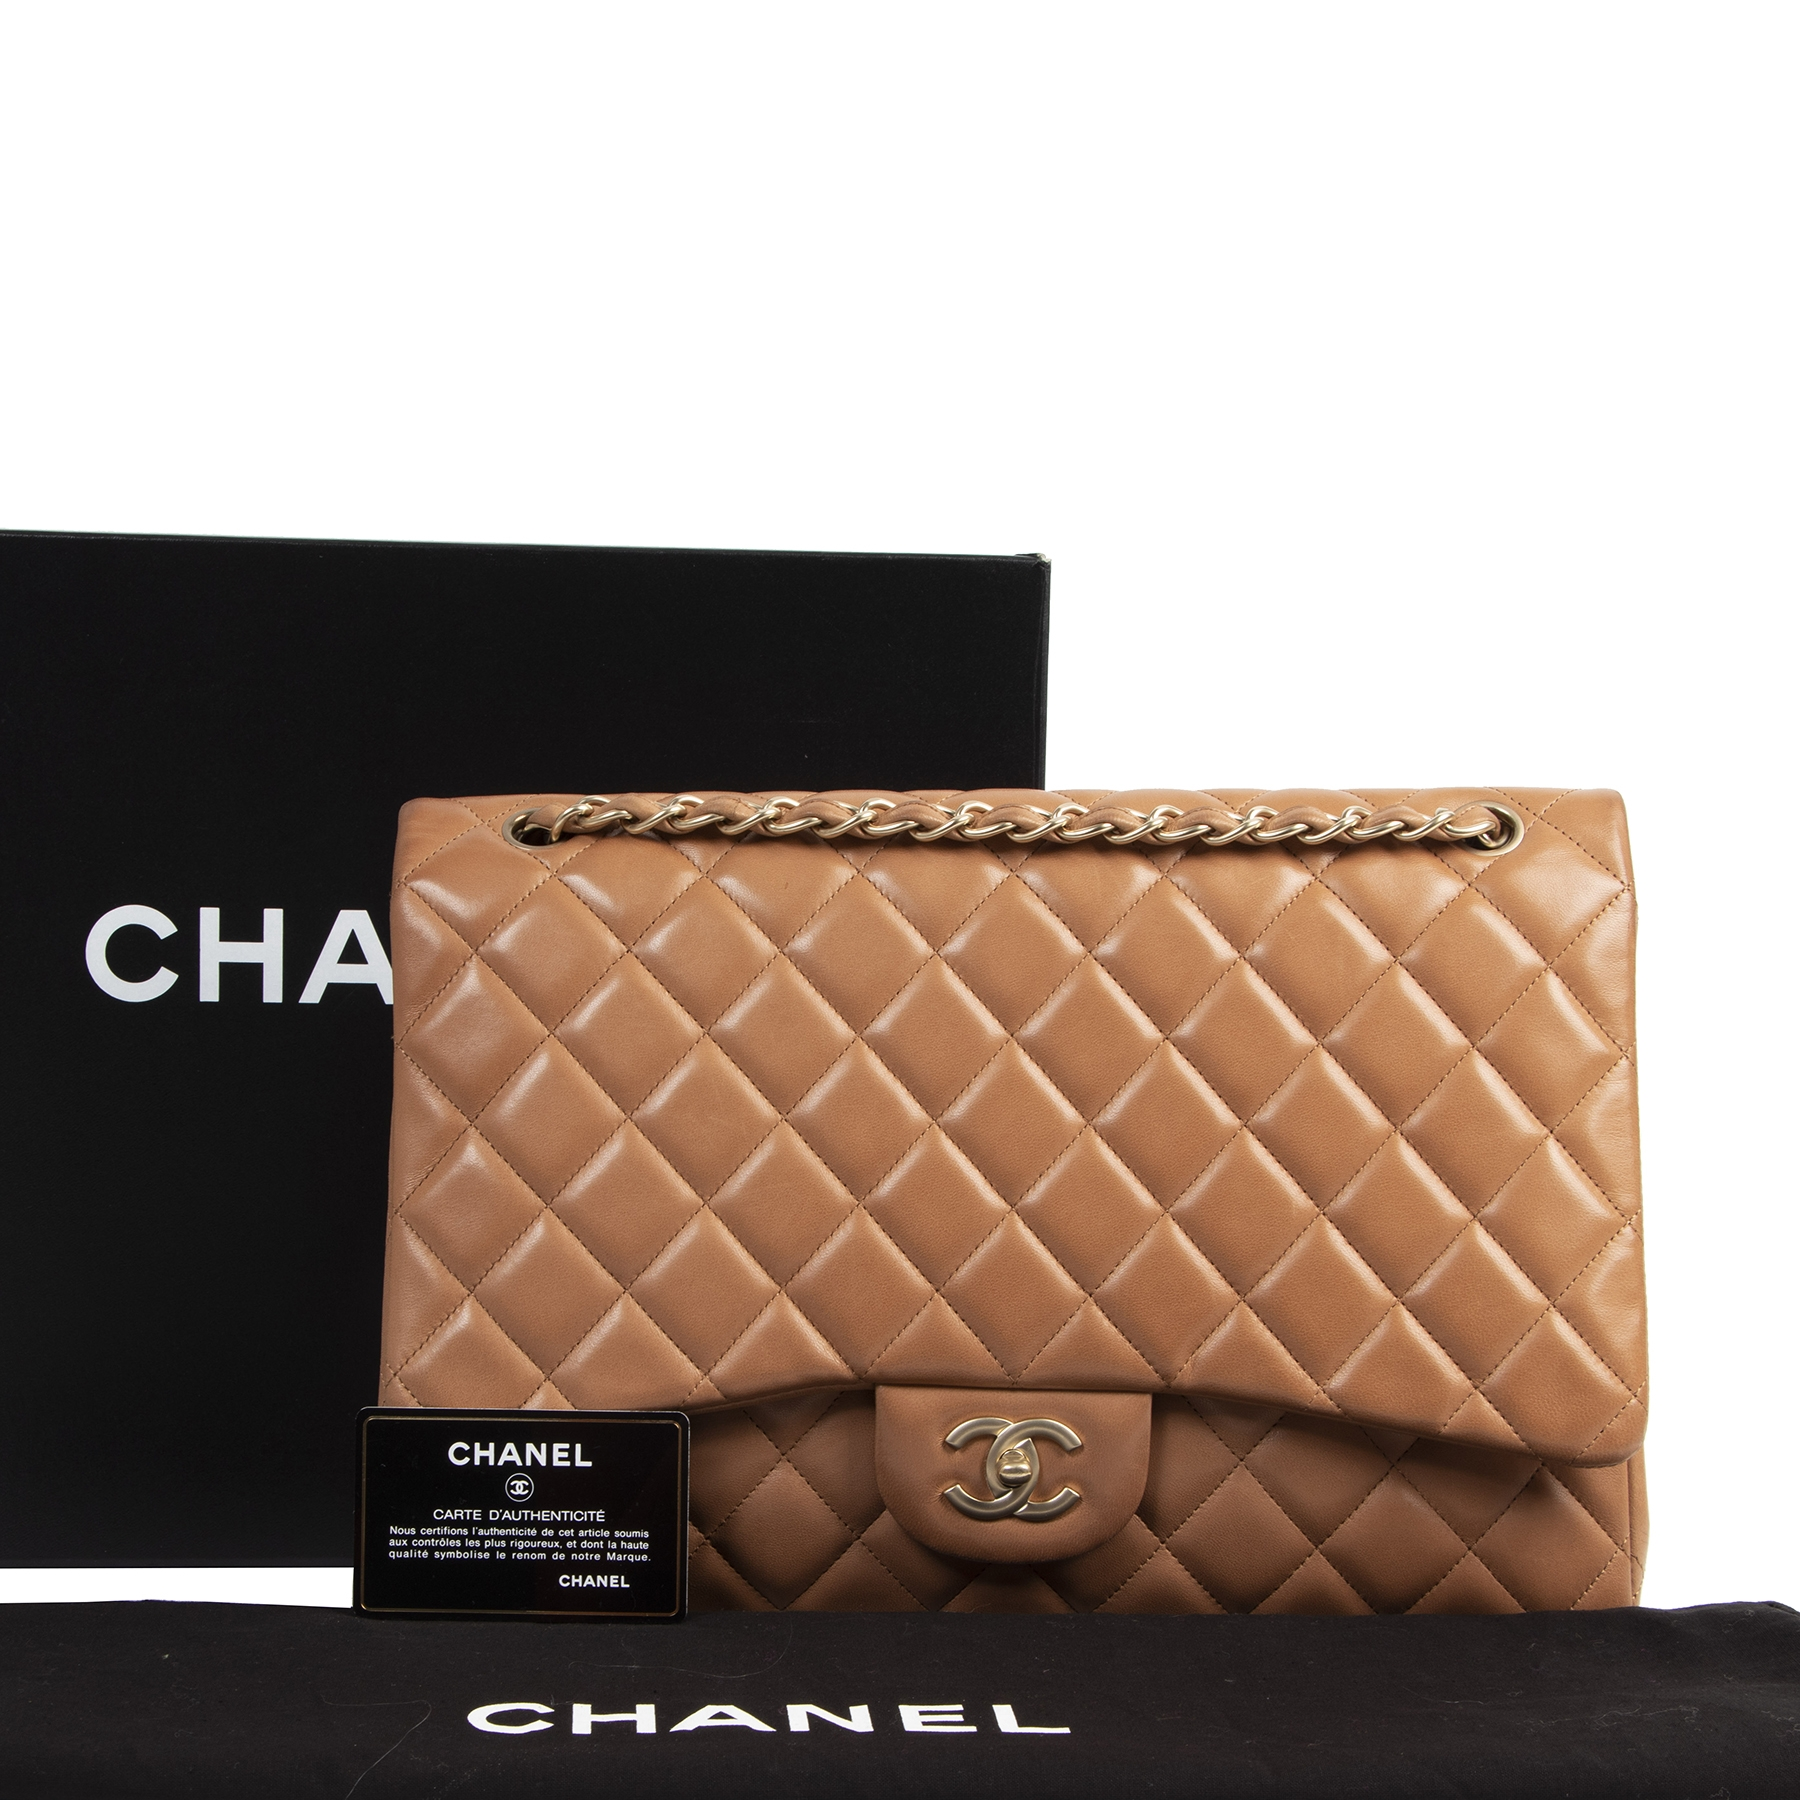 Chanel Jumbo Camel Lambskin Classic Flap Bag  online at the best price